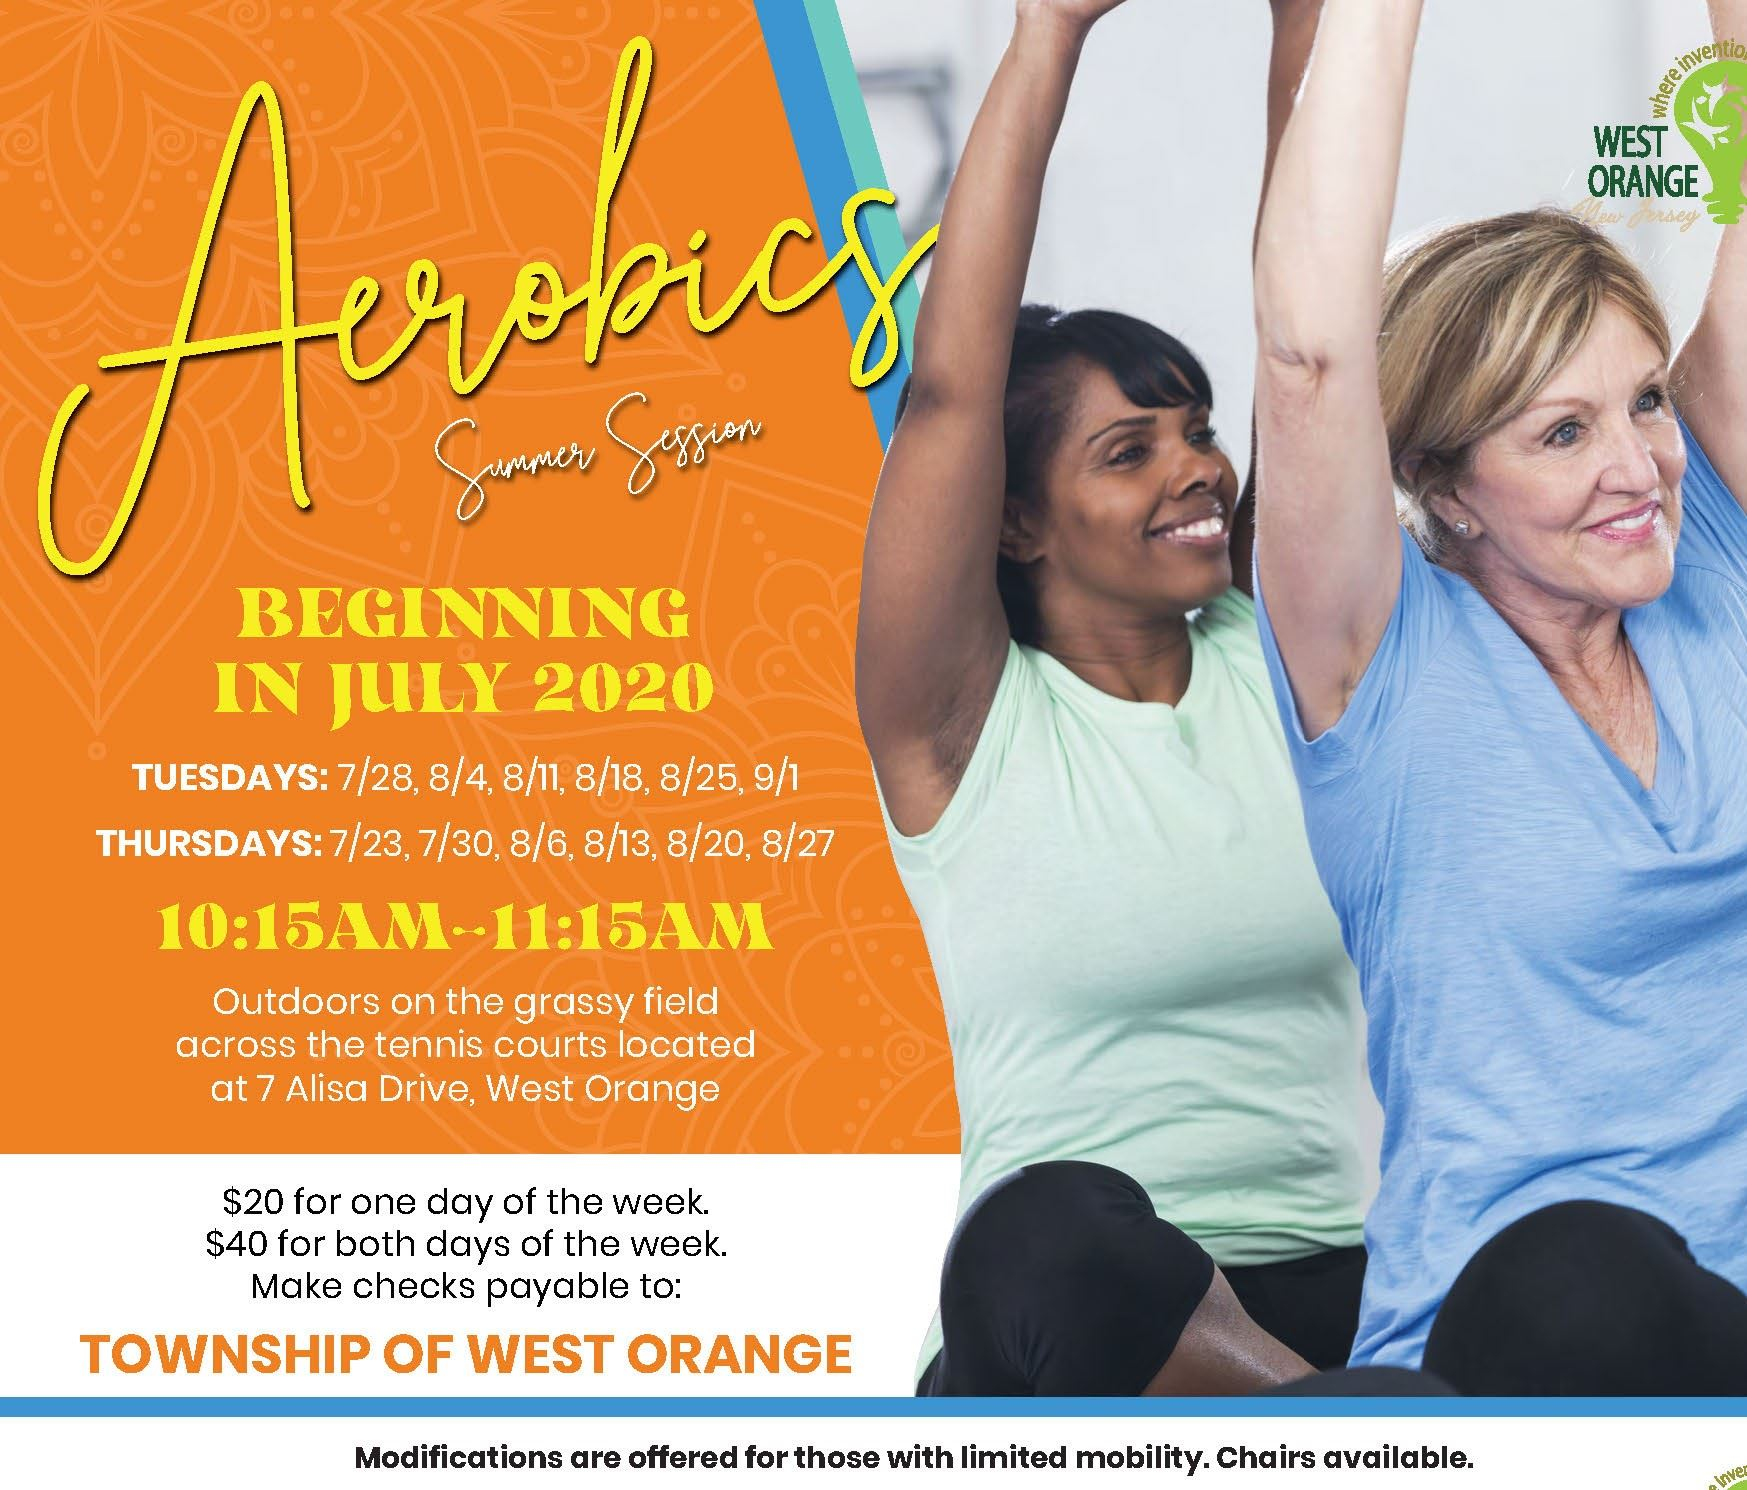 Aerobics Summer 2020 Cropped